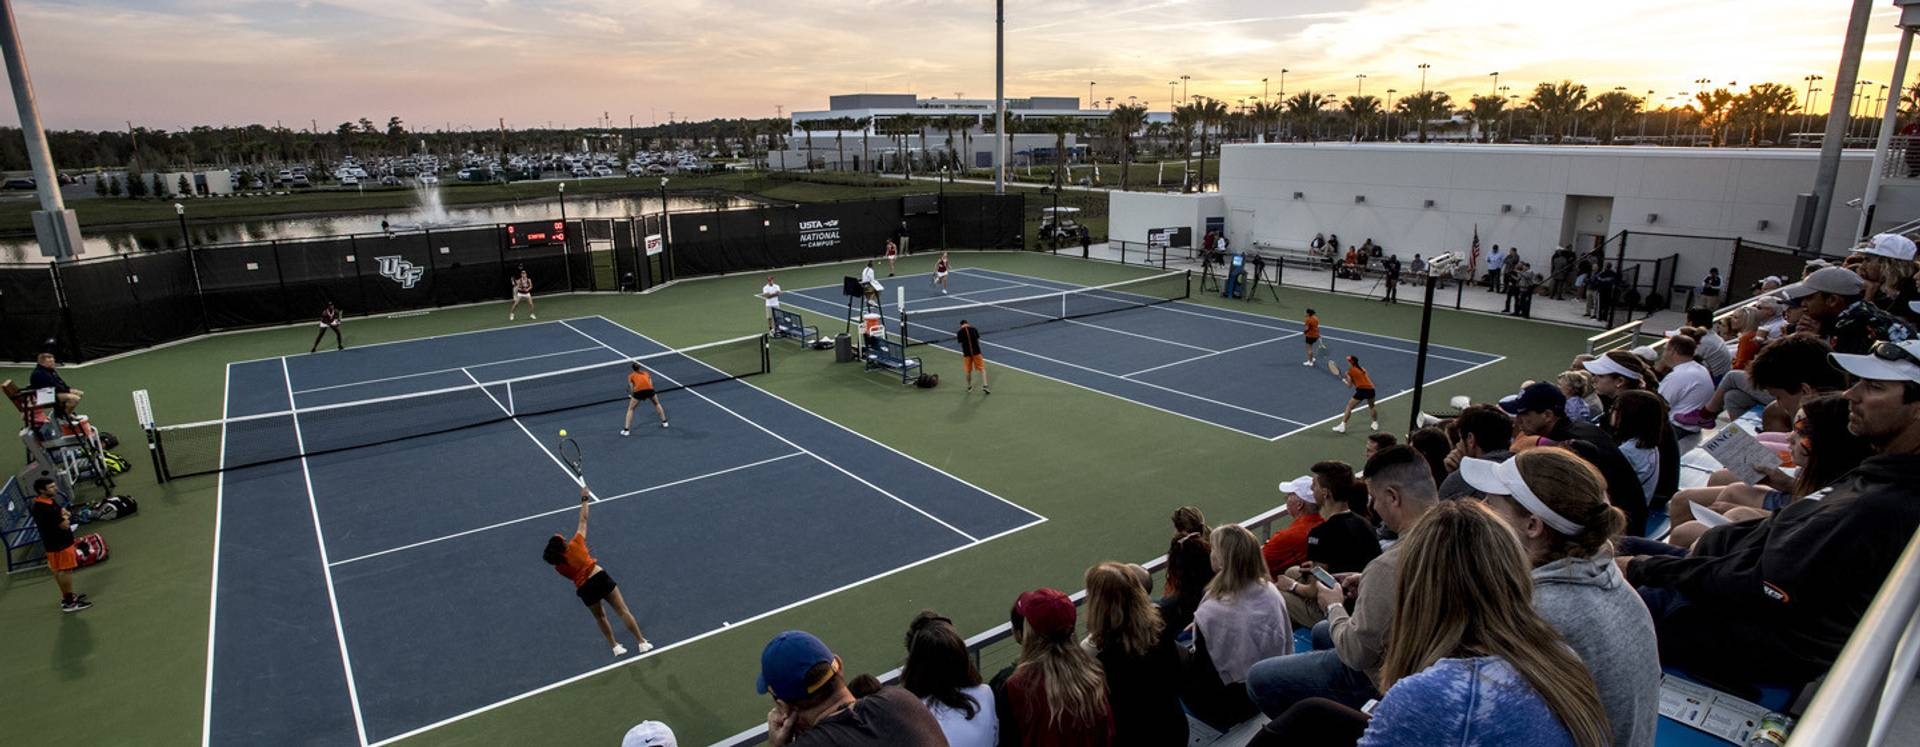 Spectators watch a tournament at the USTA Collegiate Center at Lake Nona